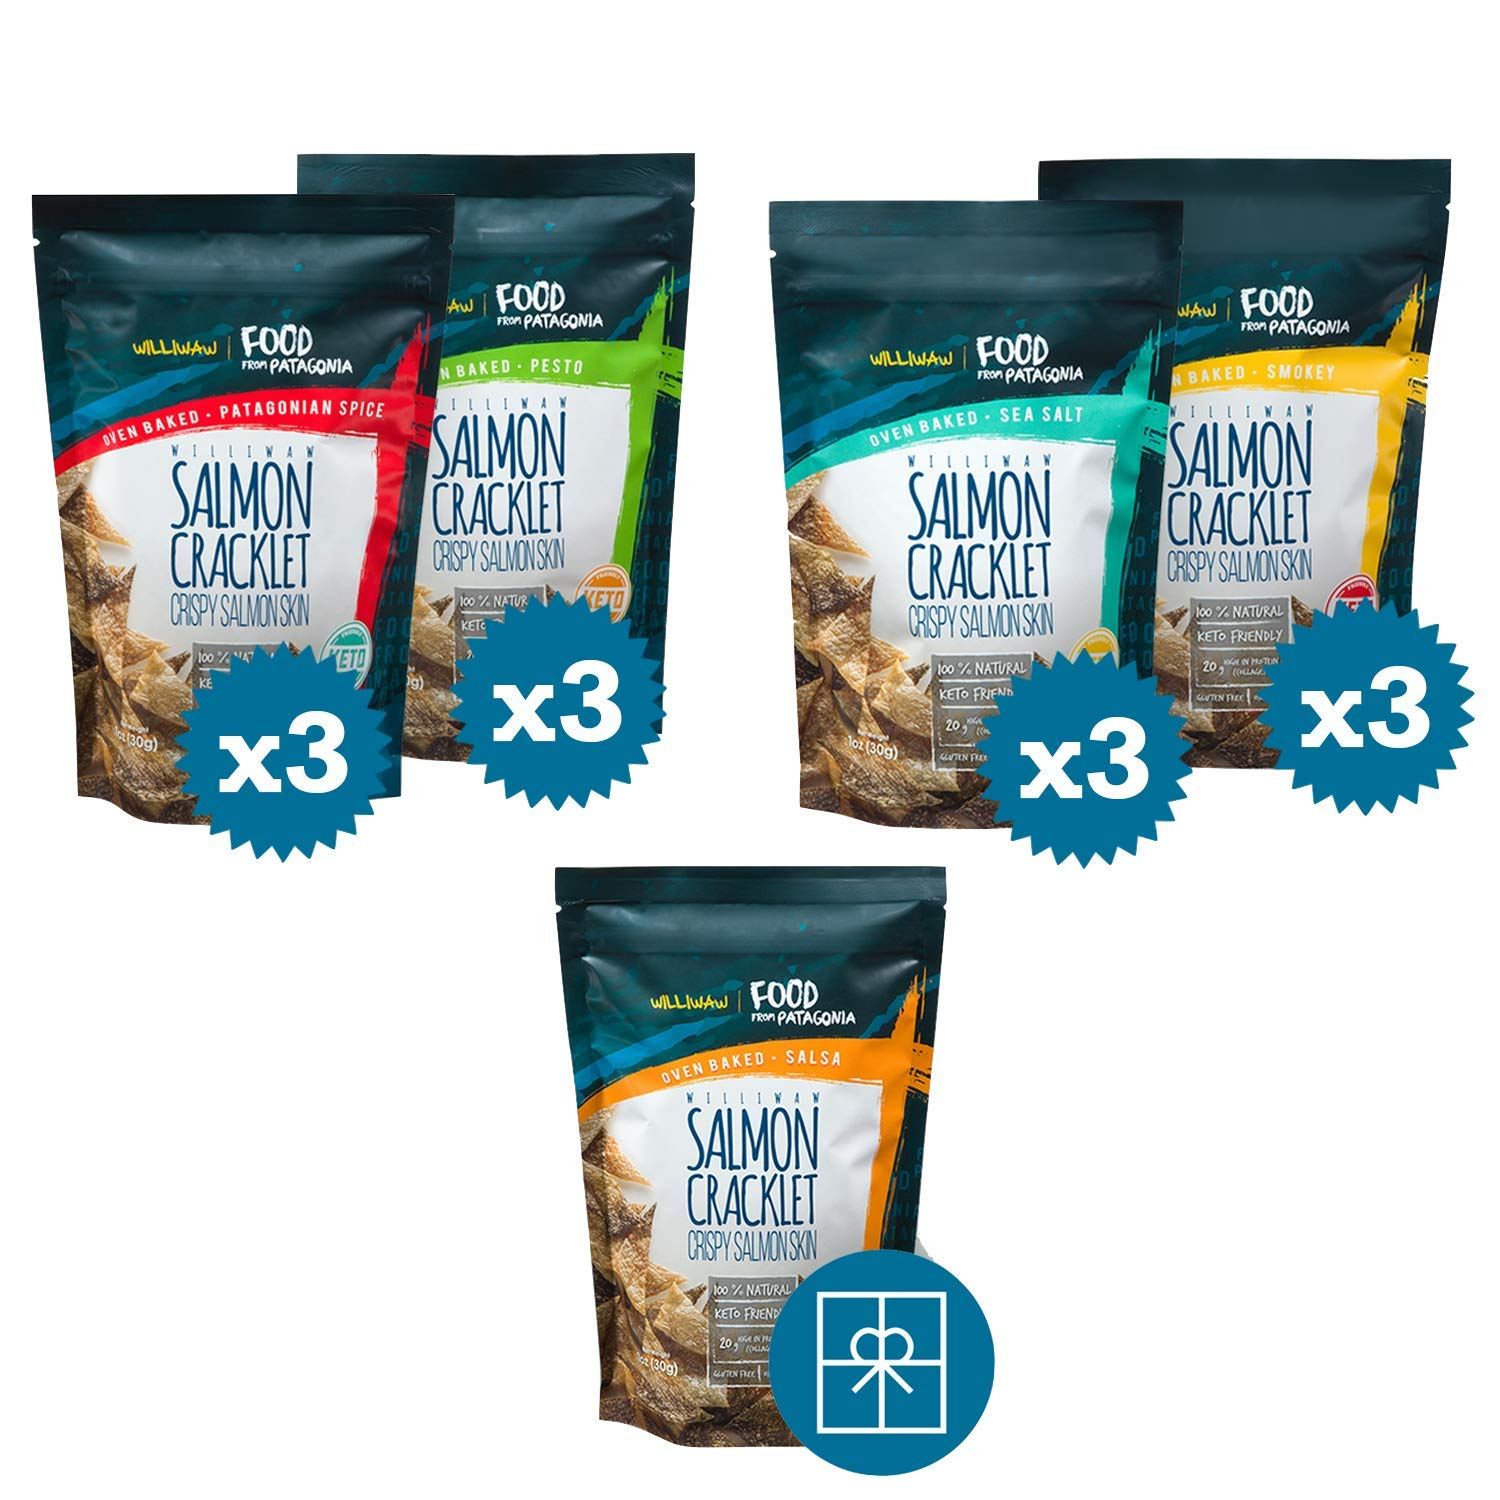 Williwaw Salmon Cracklet Pack – 1 oz – Gluten Free High Protein Snacks – Keto Friendly, High in Collagen, Up-Cycling, Crispy, Patagonia – Natural Oven Baked Crackers - Pack of 12 + Get 1 For Free